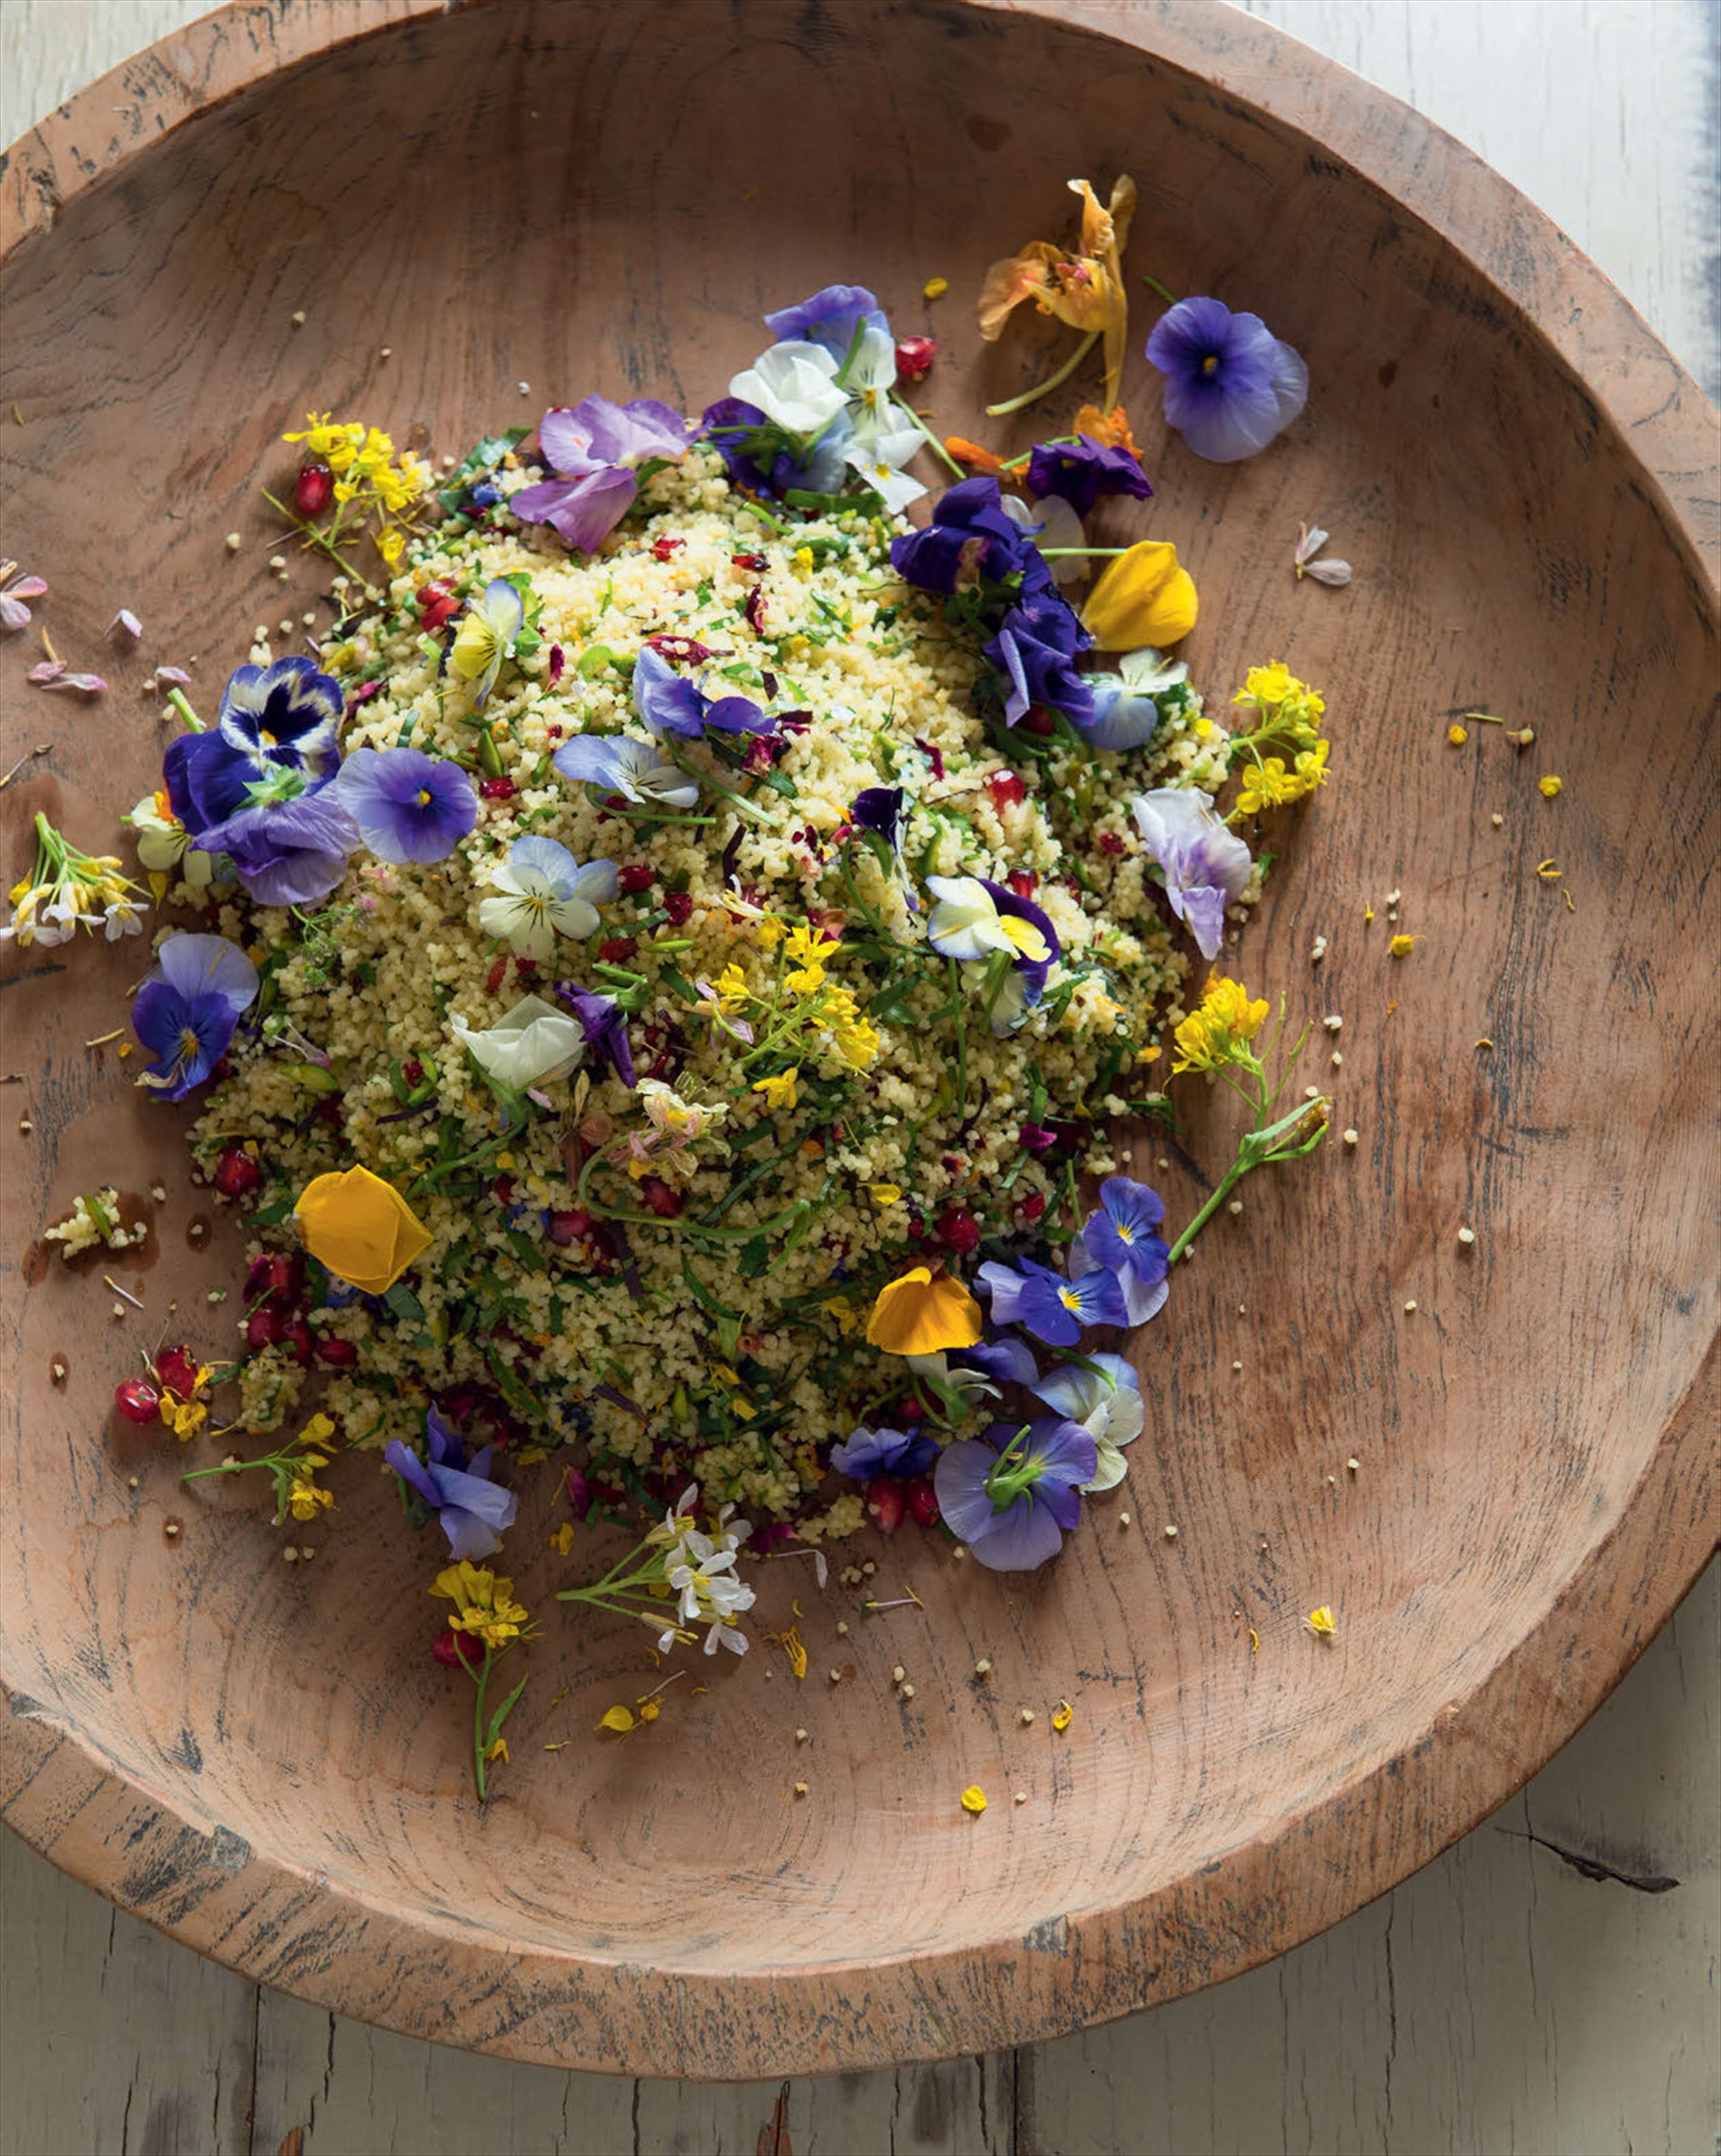 Wedding couscous with herbs & flowers